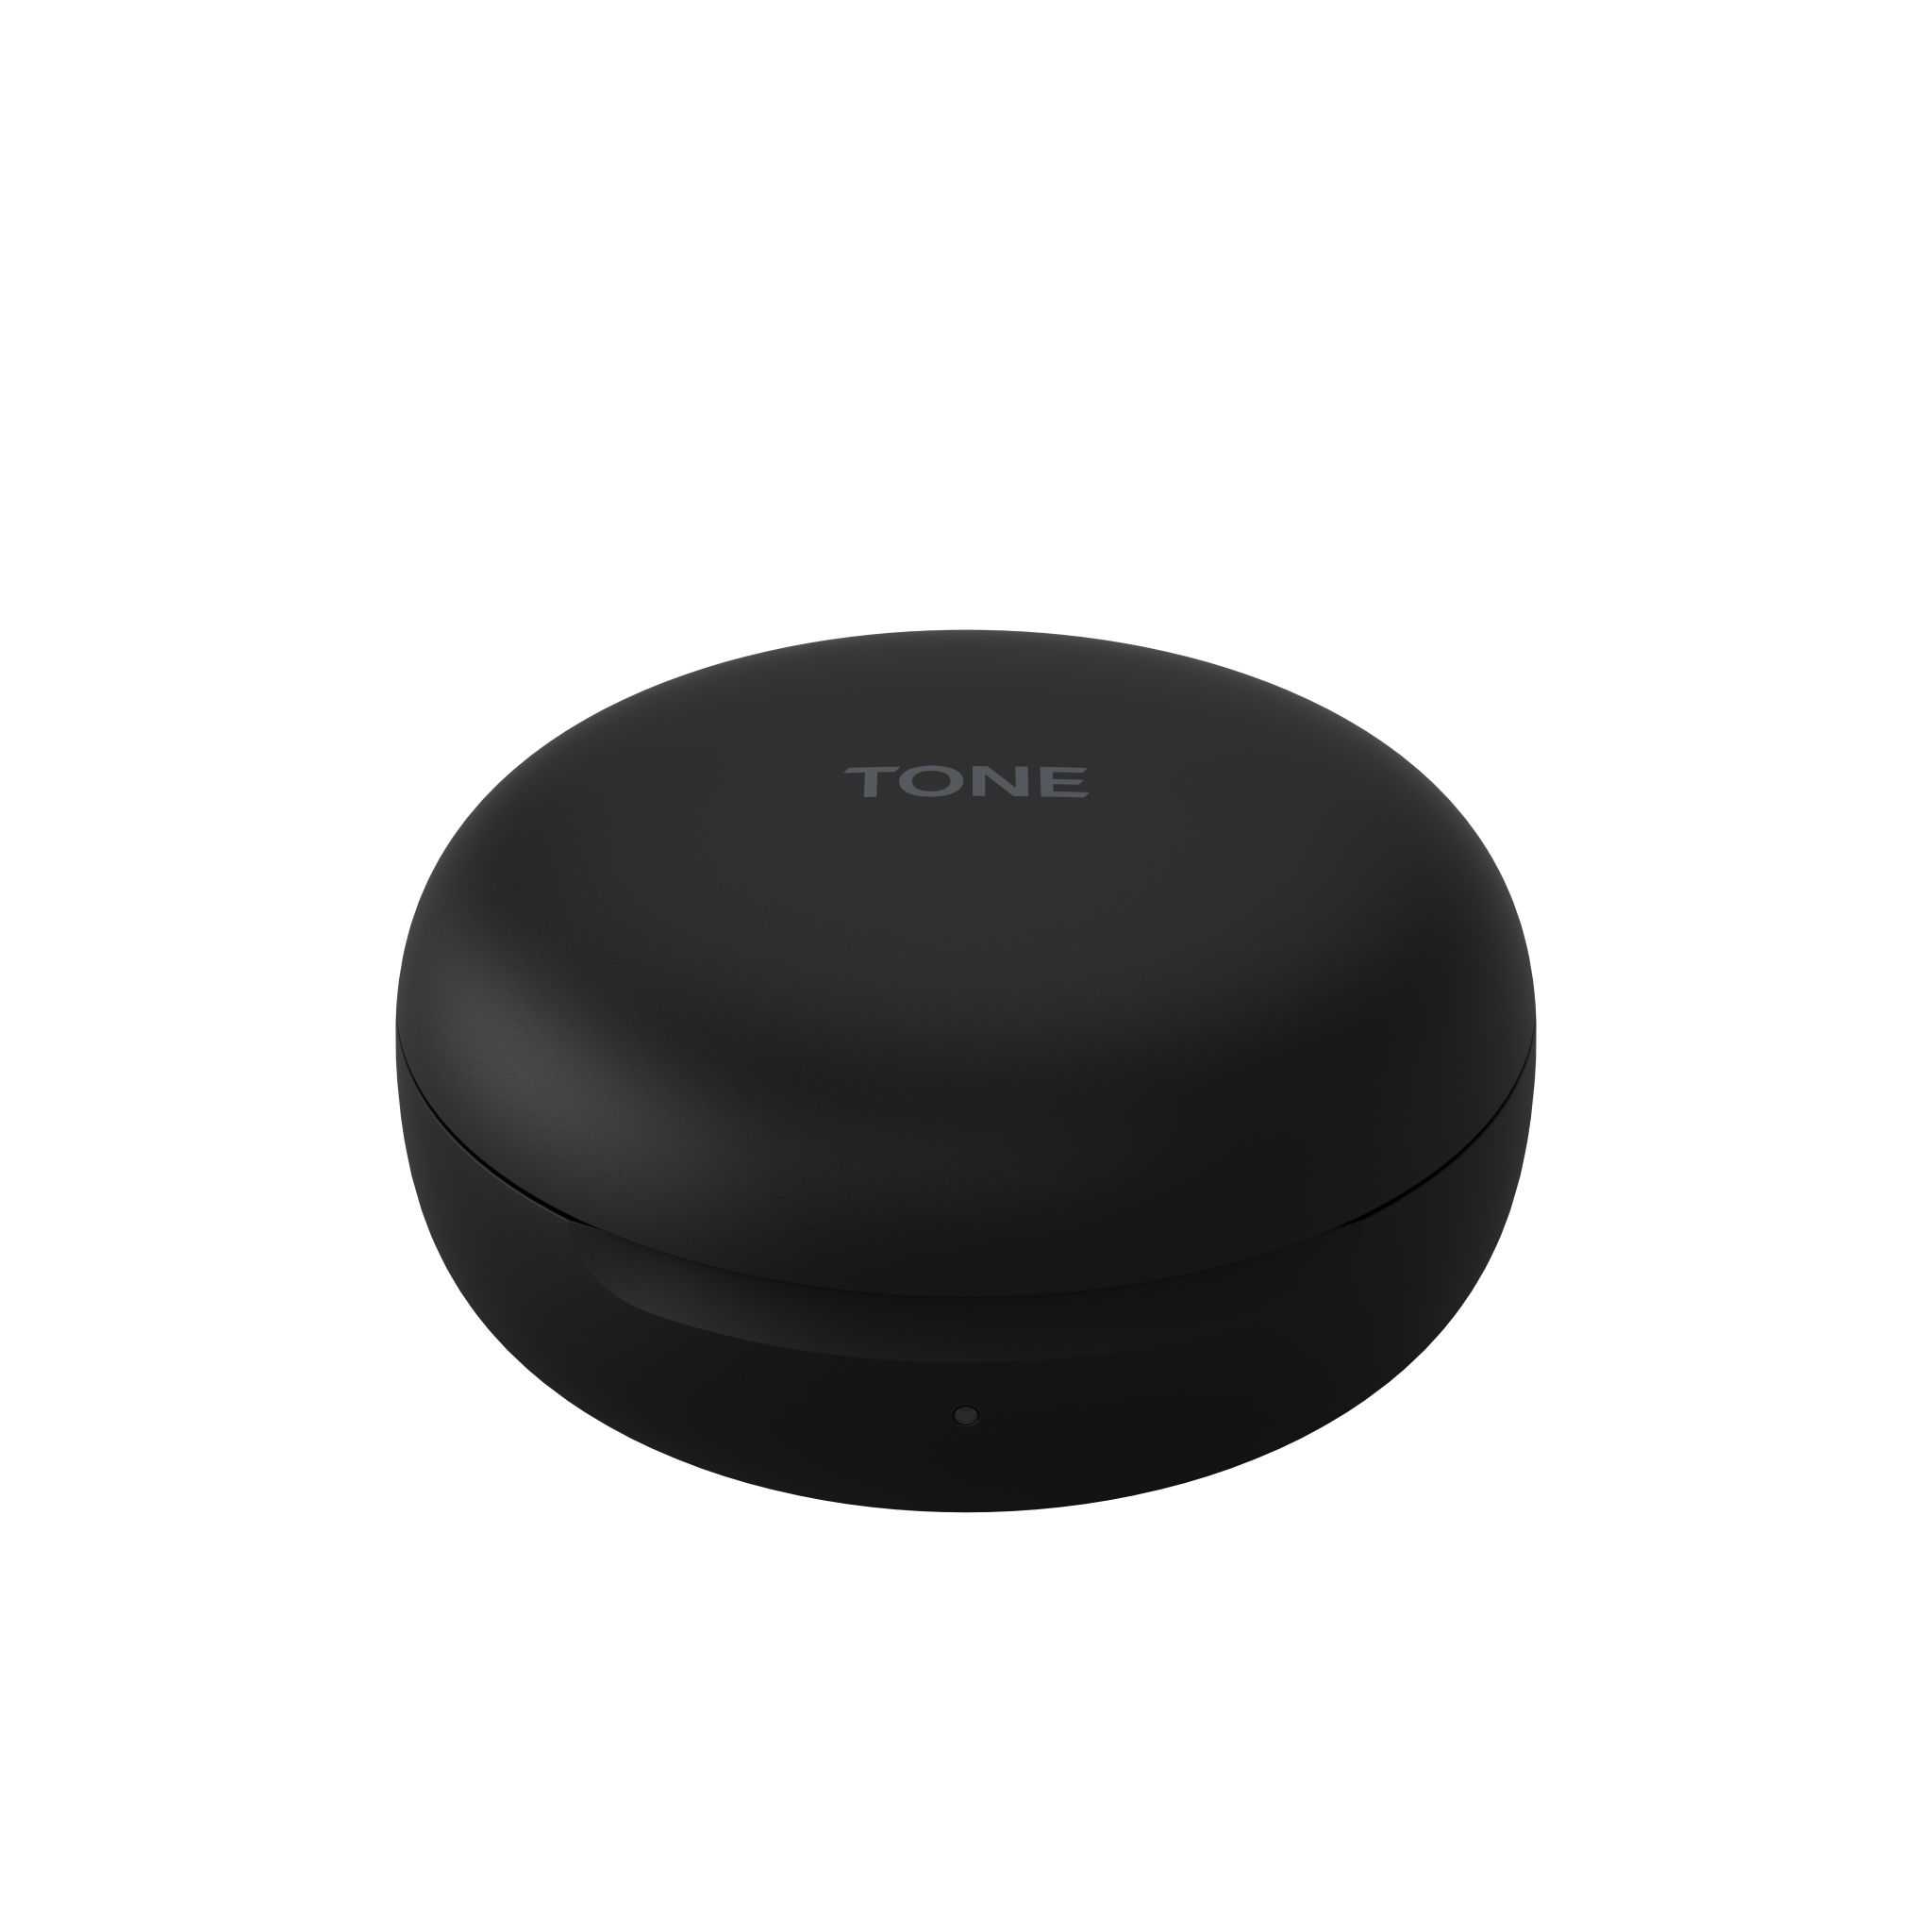 Earbud Charging Case image